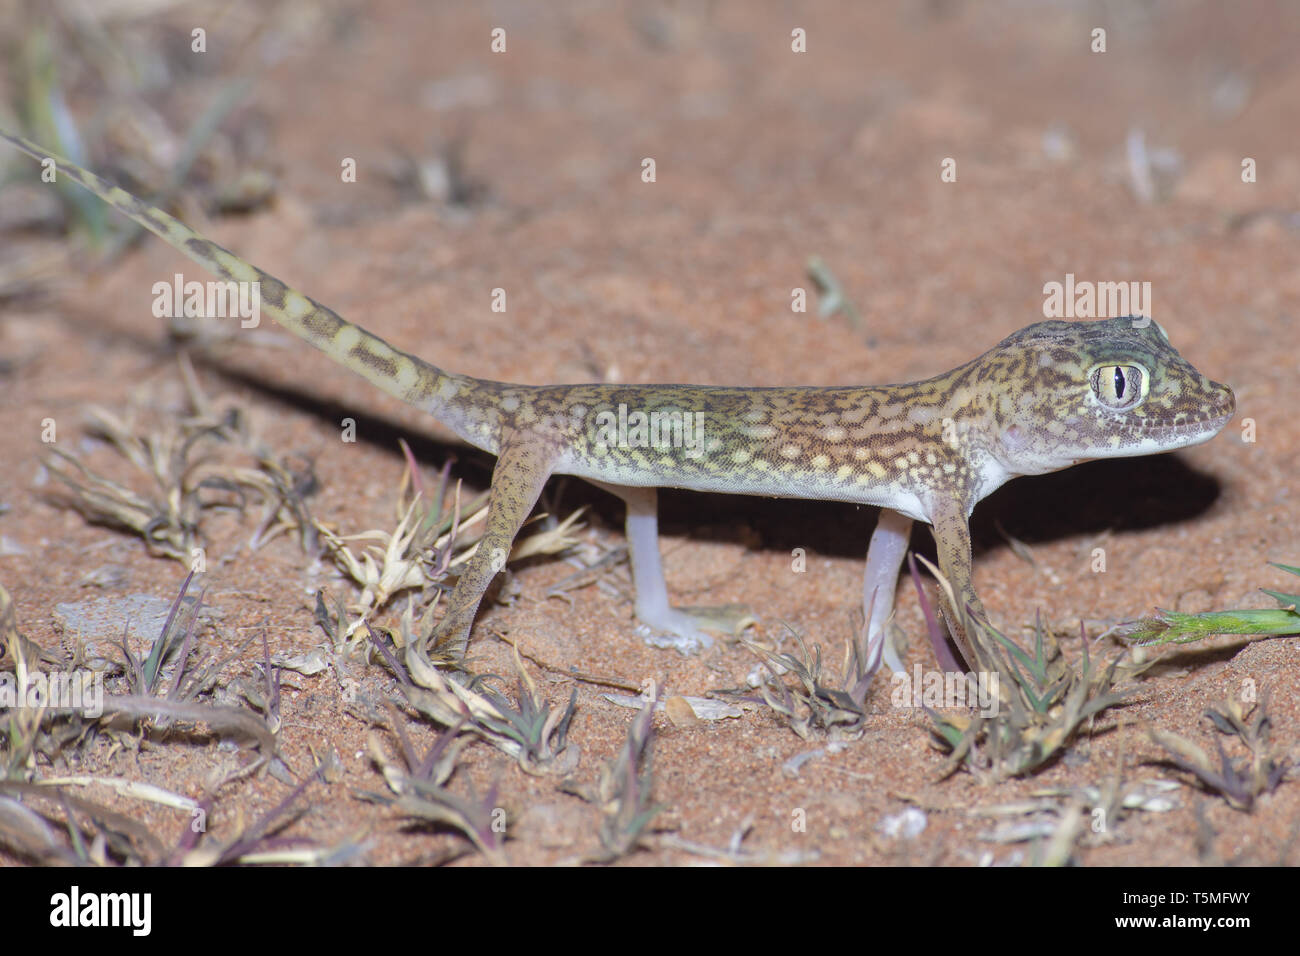 Middle Eastern Short-Fingered Gecko (Stenodactylus doriae) standing in the United Arab Emirates desert in the sand at night. Stock Photo